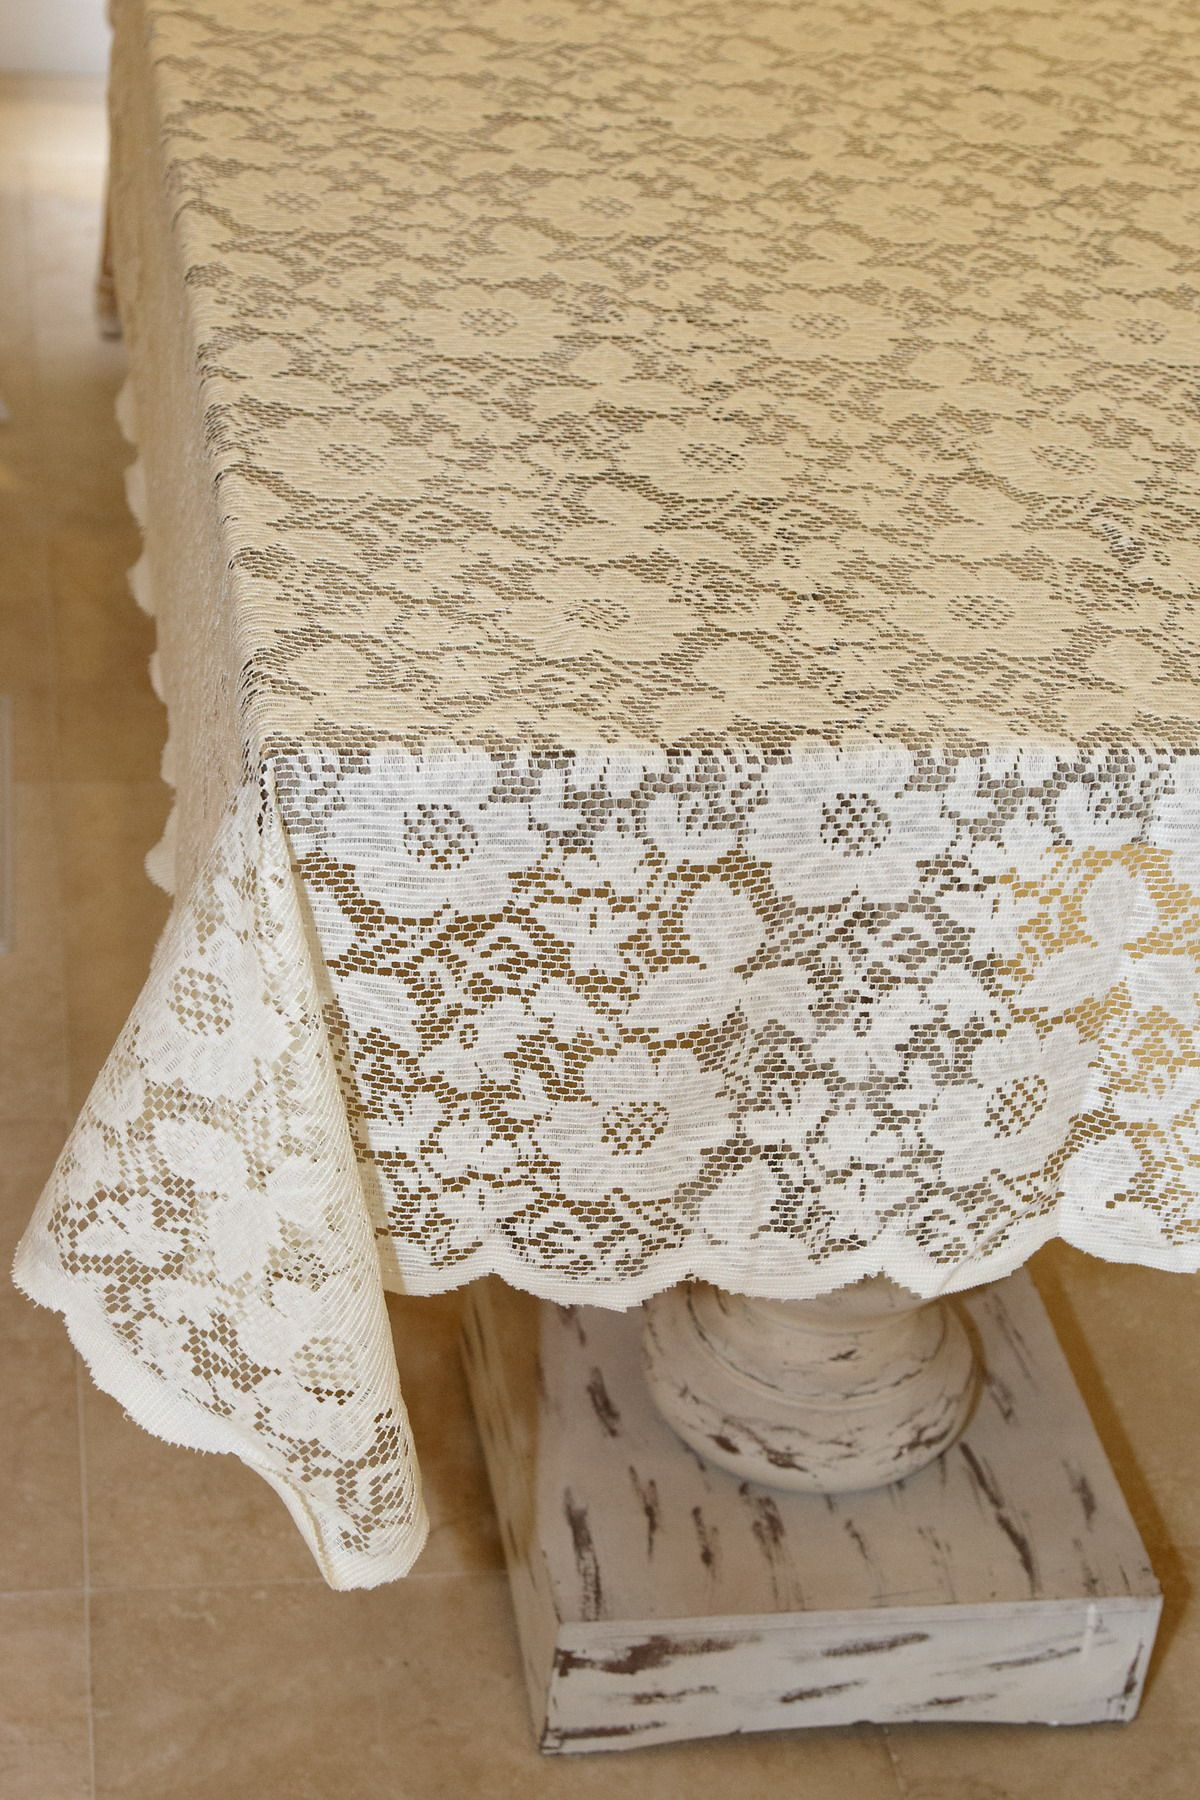 Bon Tablecloth Lace Square Ivory 54in For $10